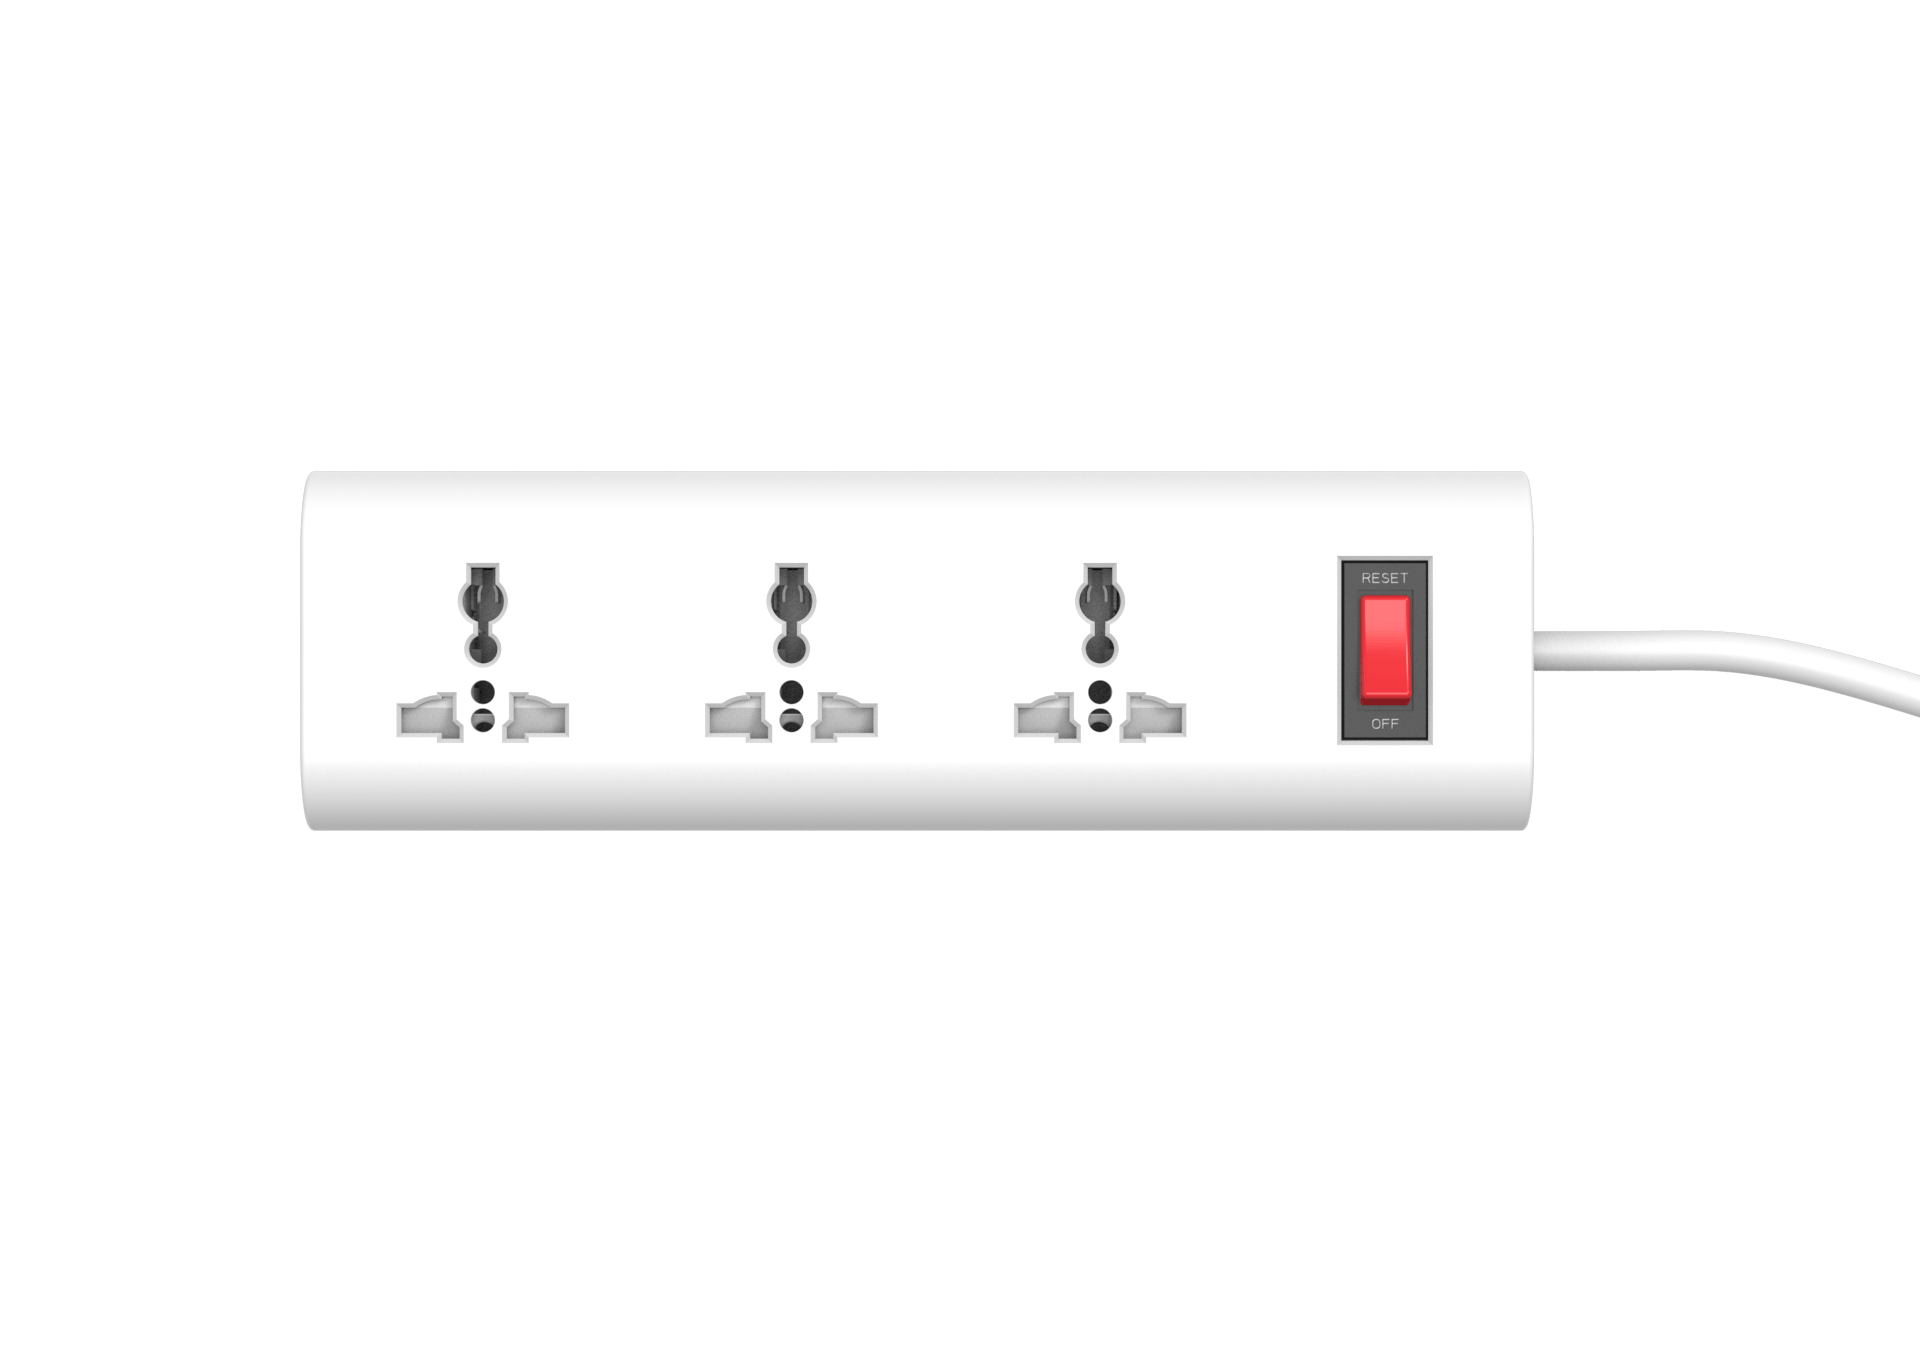 3 AC outlet universal power strip with switch